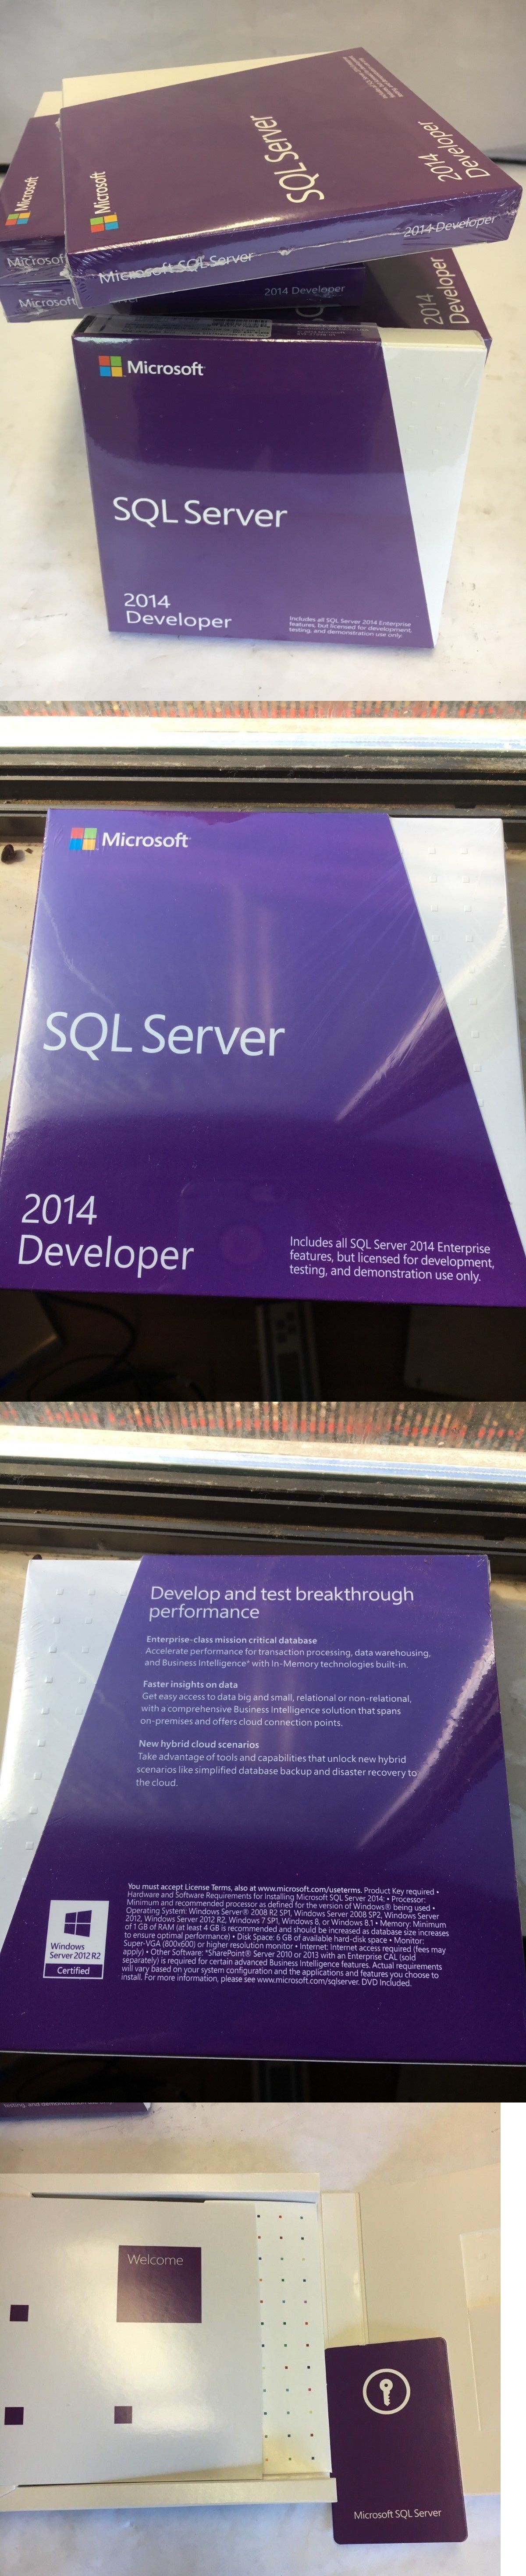 Servers Development and DBMS 80356: Microsoft Sql Server